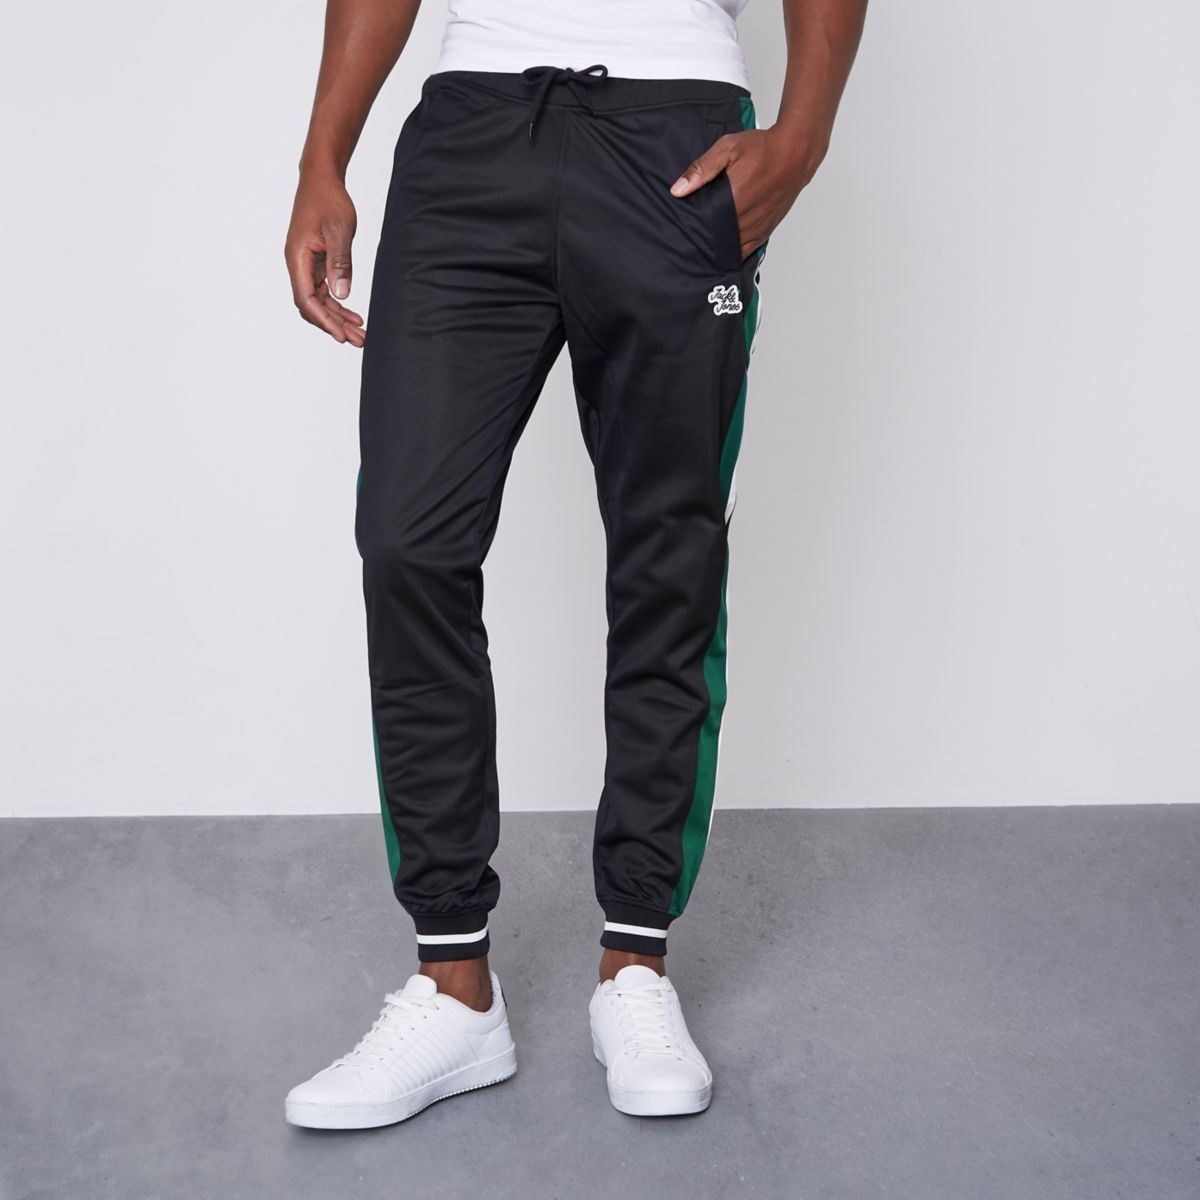 Jack & Jones - Zwarte joggingbroek